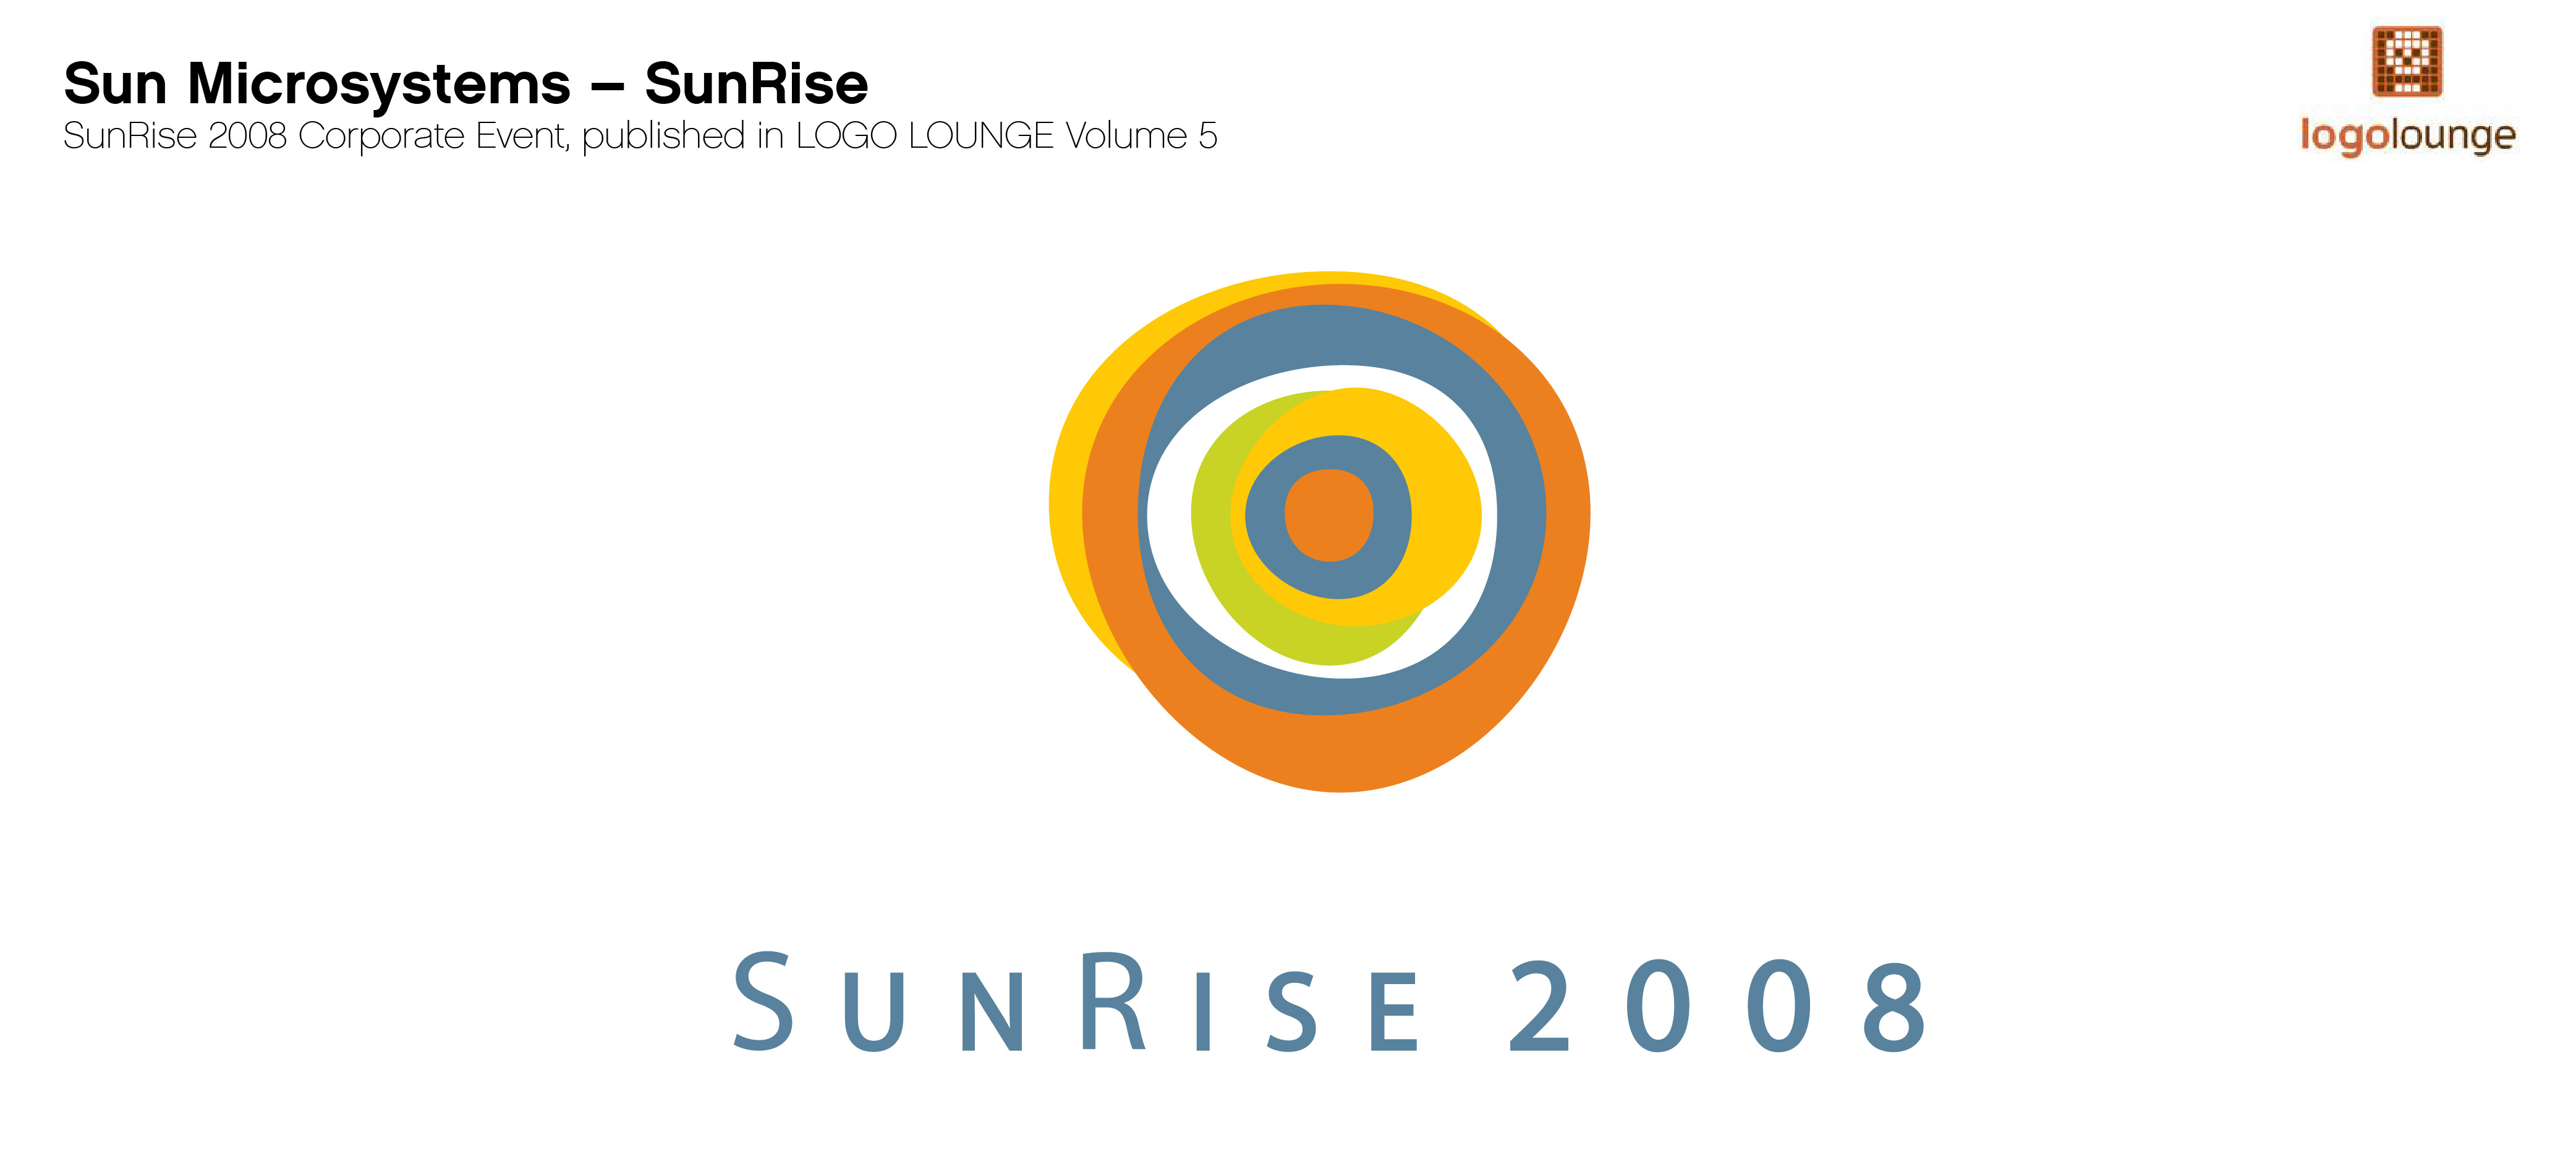 Sun Microsystems 2008 SunRise Event